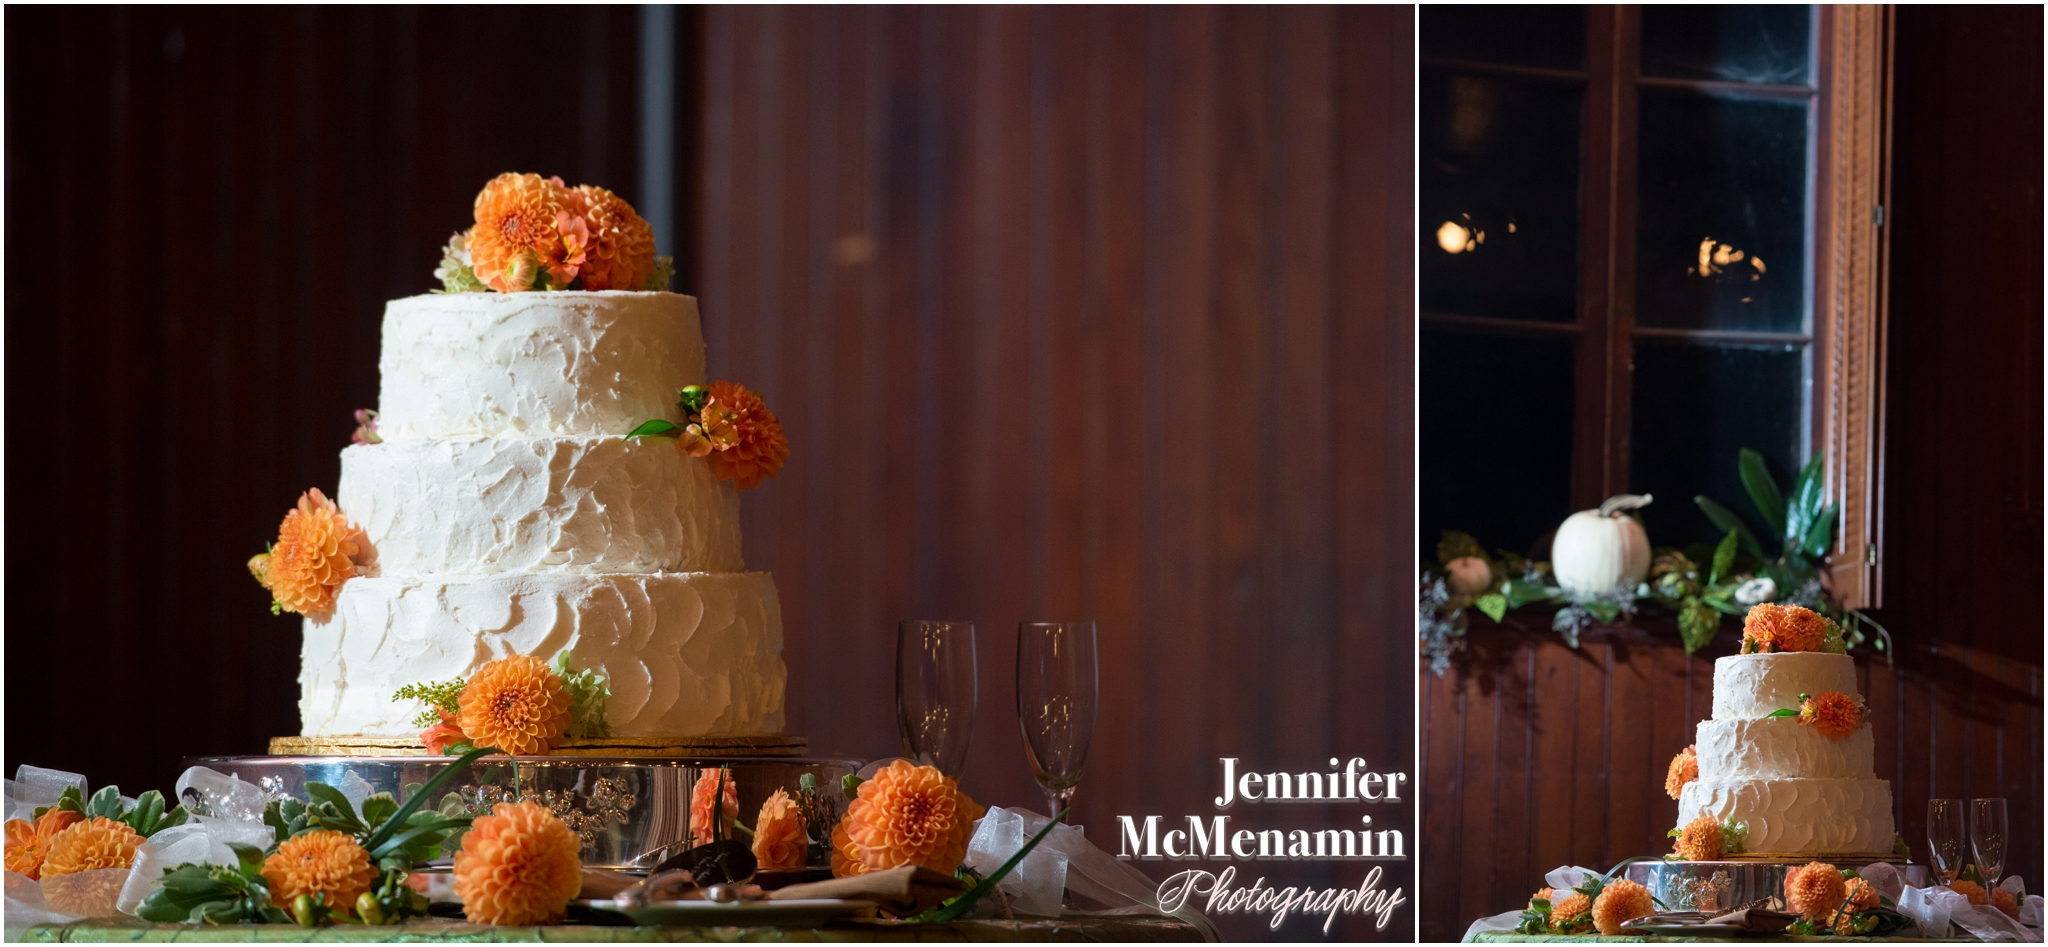 073-HenningMiller_02556-0531_JenniferMcMenaminPhotography_Evergreen-Museum-And-Carriage-House_Evergreen-wedding_Baltimore-wedding-photographer_Baltimore-wedding-photography